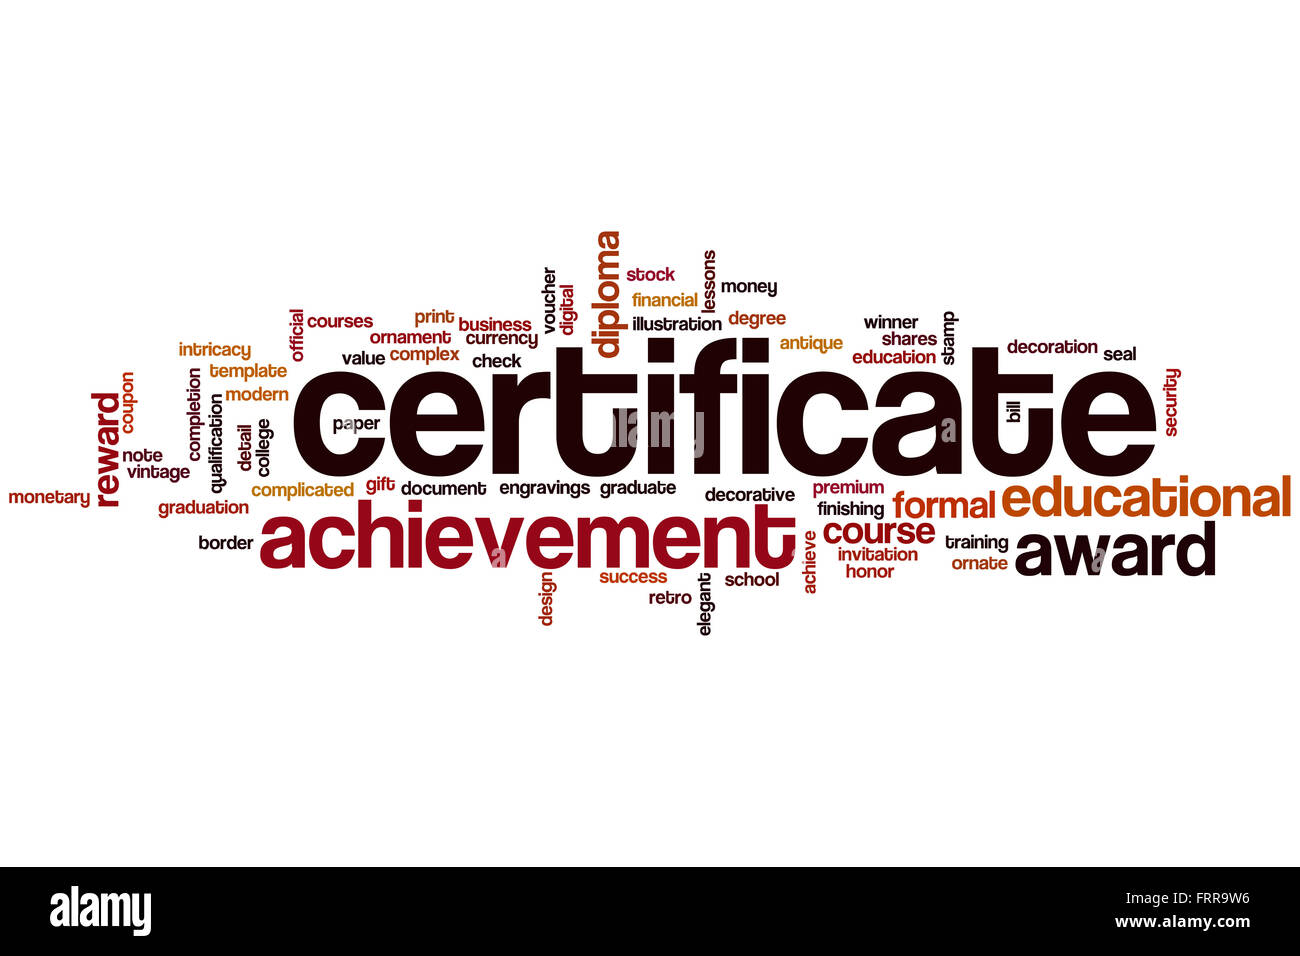 Certificate Word Cloud Concept  Certificate Word